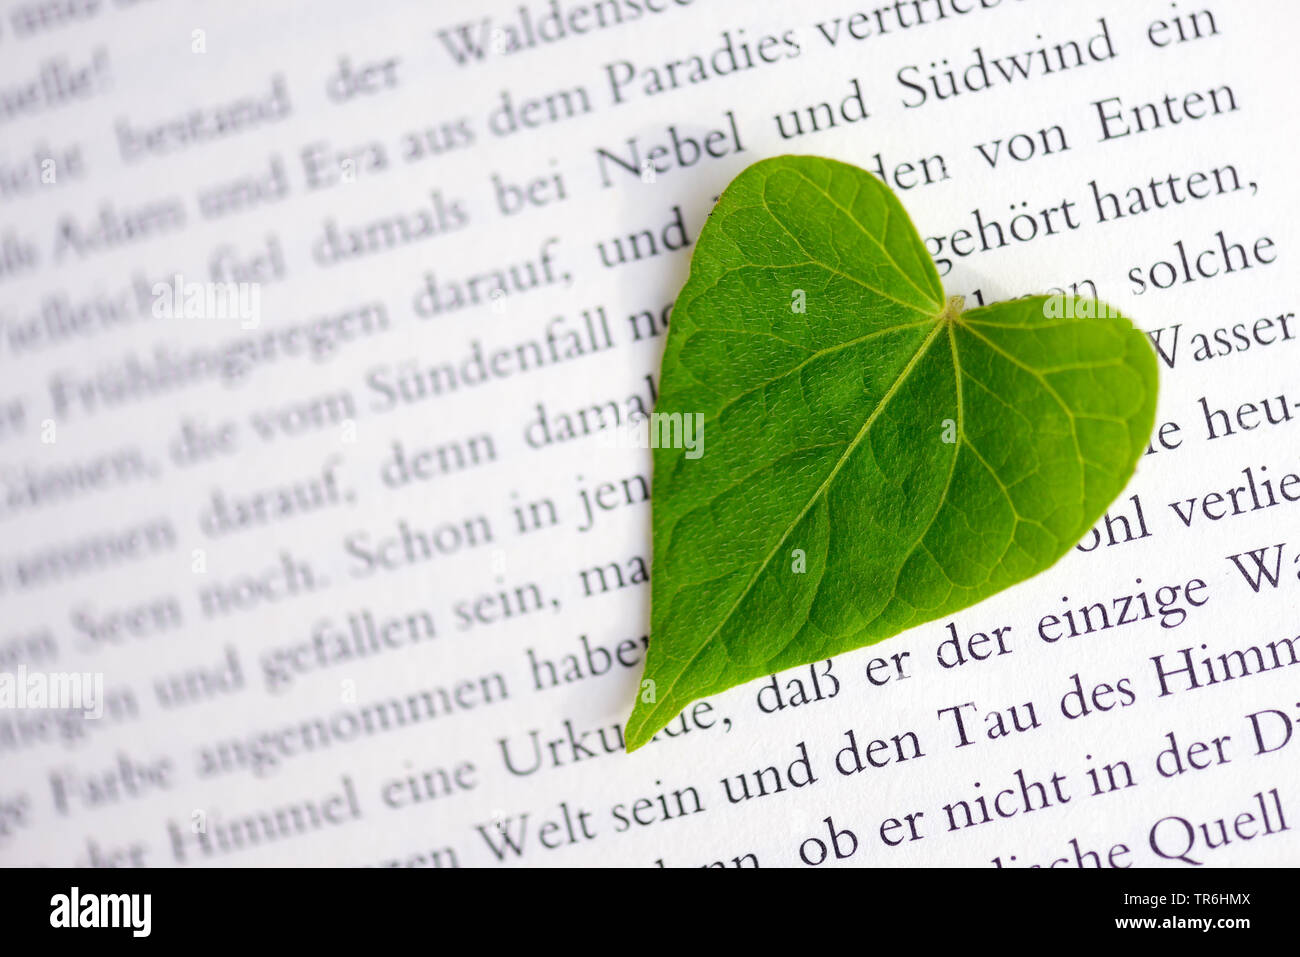 heart-shaped leaf on a bookpage, romance, Germany Stock Photo